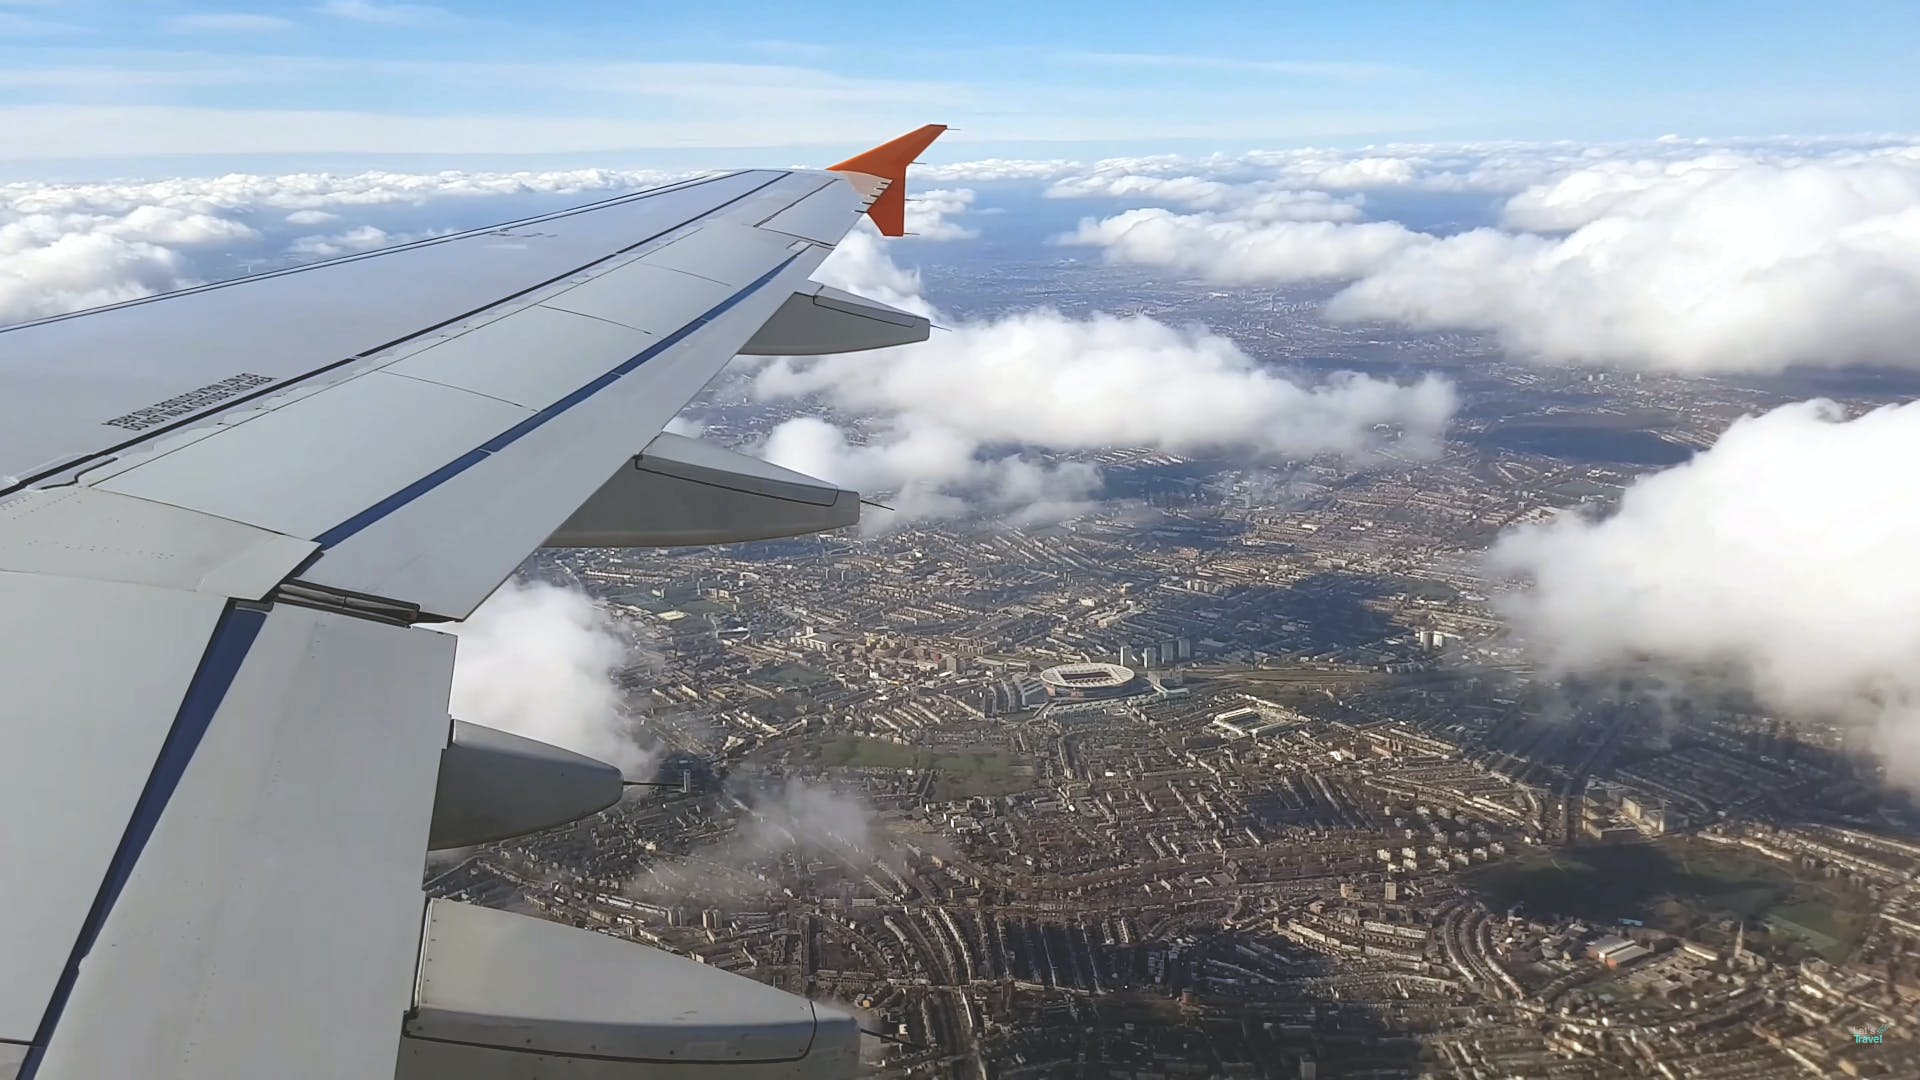 Free stock photo of aircraft wings, airoplane, airplane, city